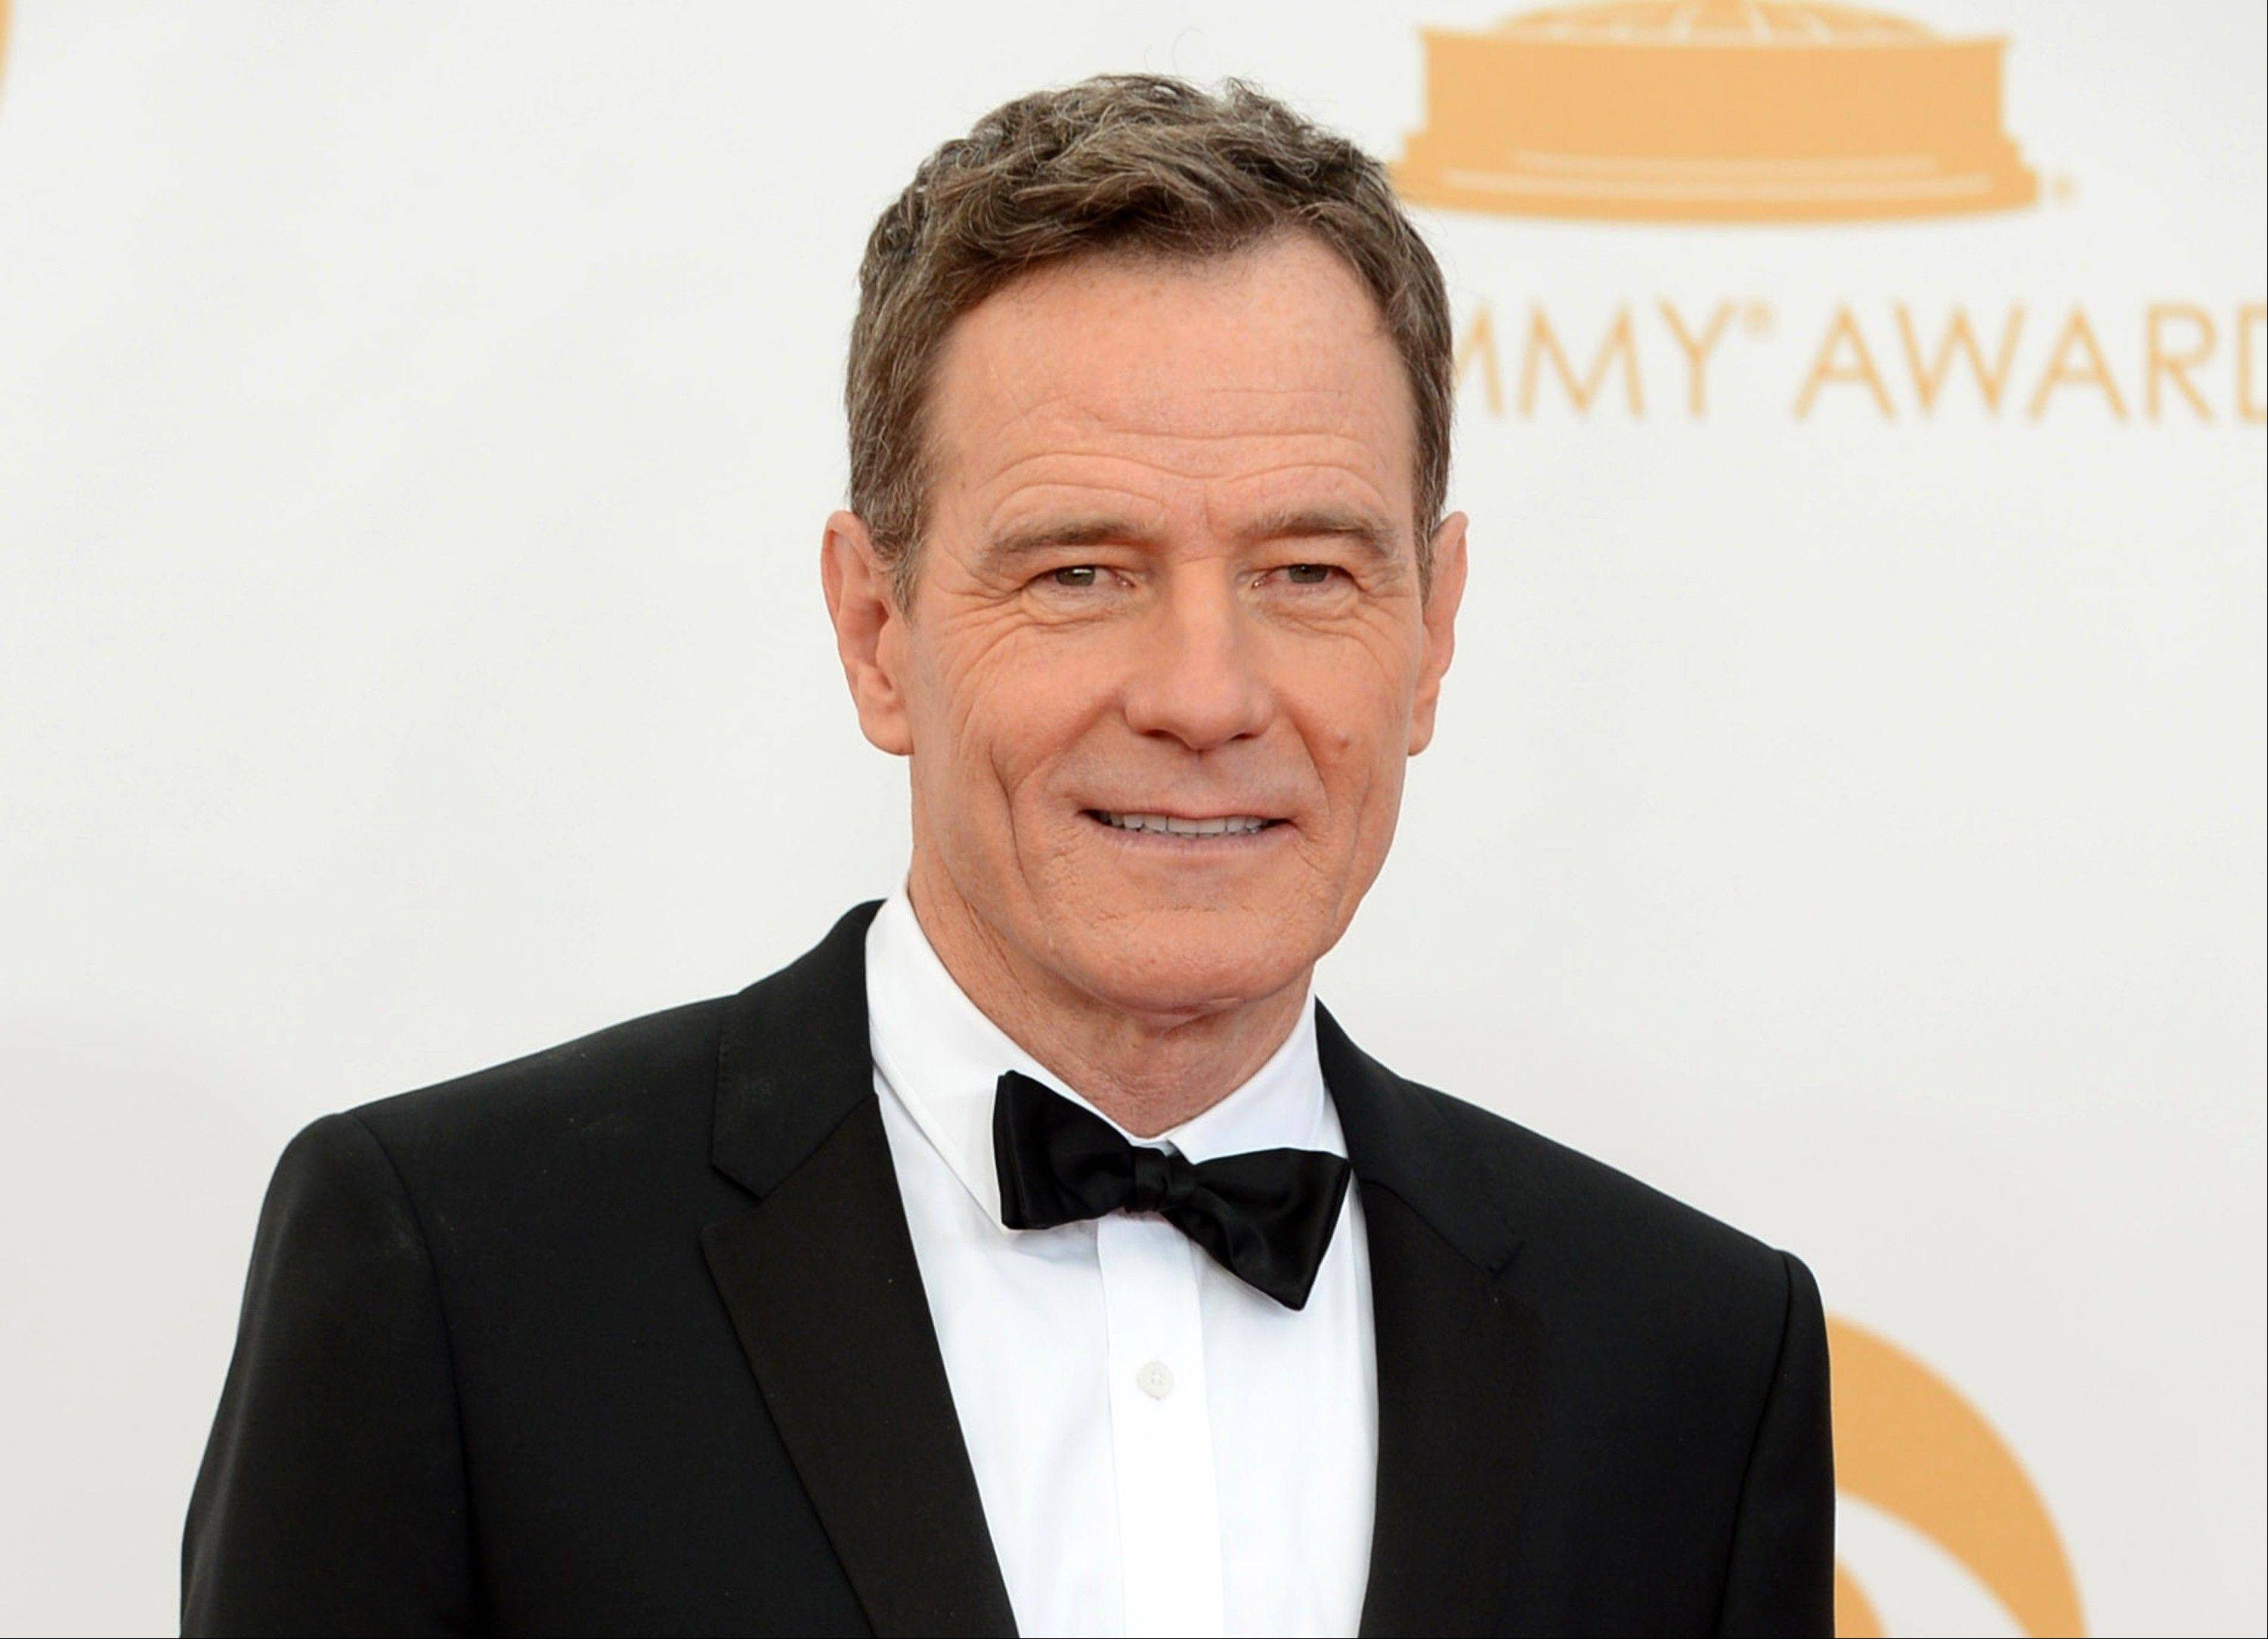 CBS says �Breaking Bad� star Bryan Cranston is coming back to �How I Met Your Mother.� Cranston will reprise his role as Hammond Druthers, who was Ted�s old boss until he had a meltdown.